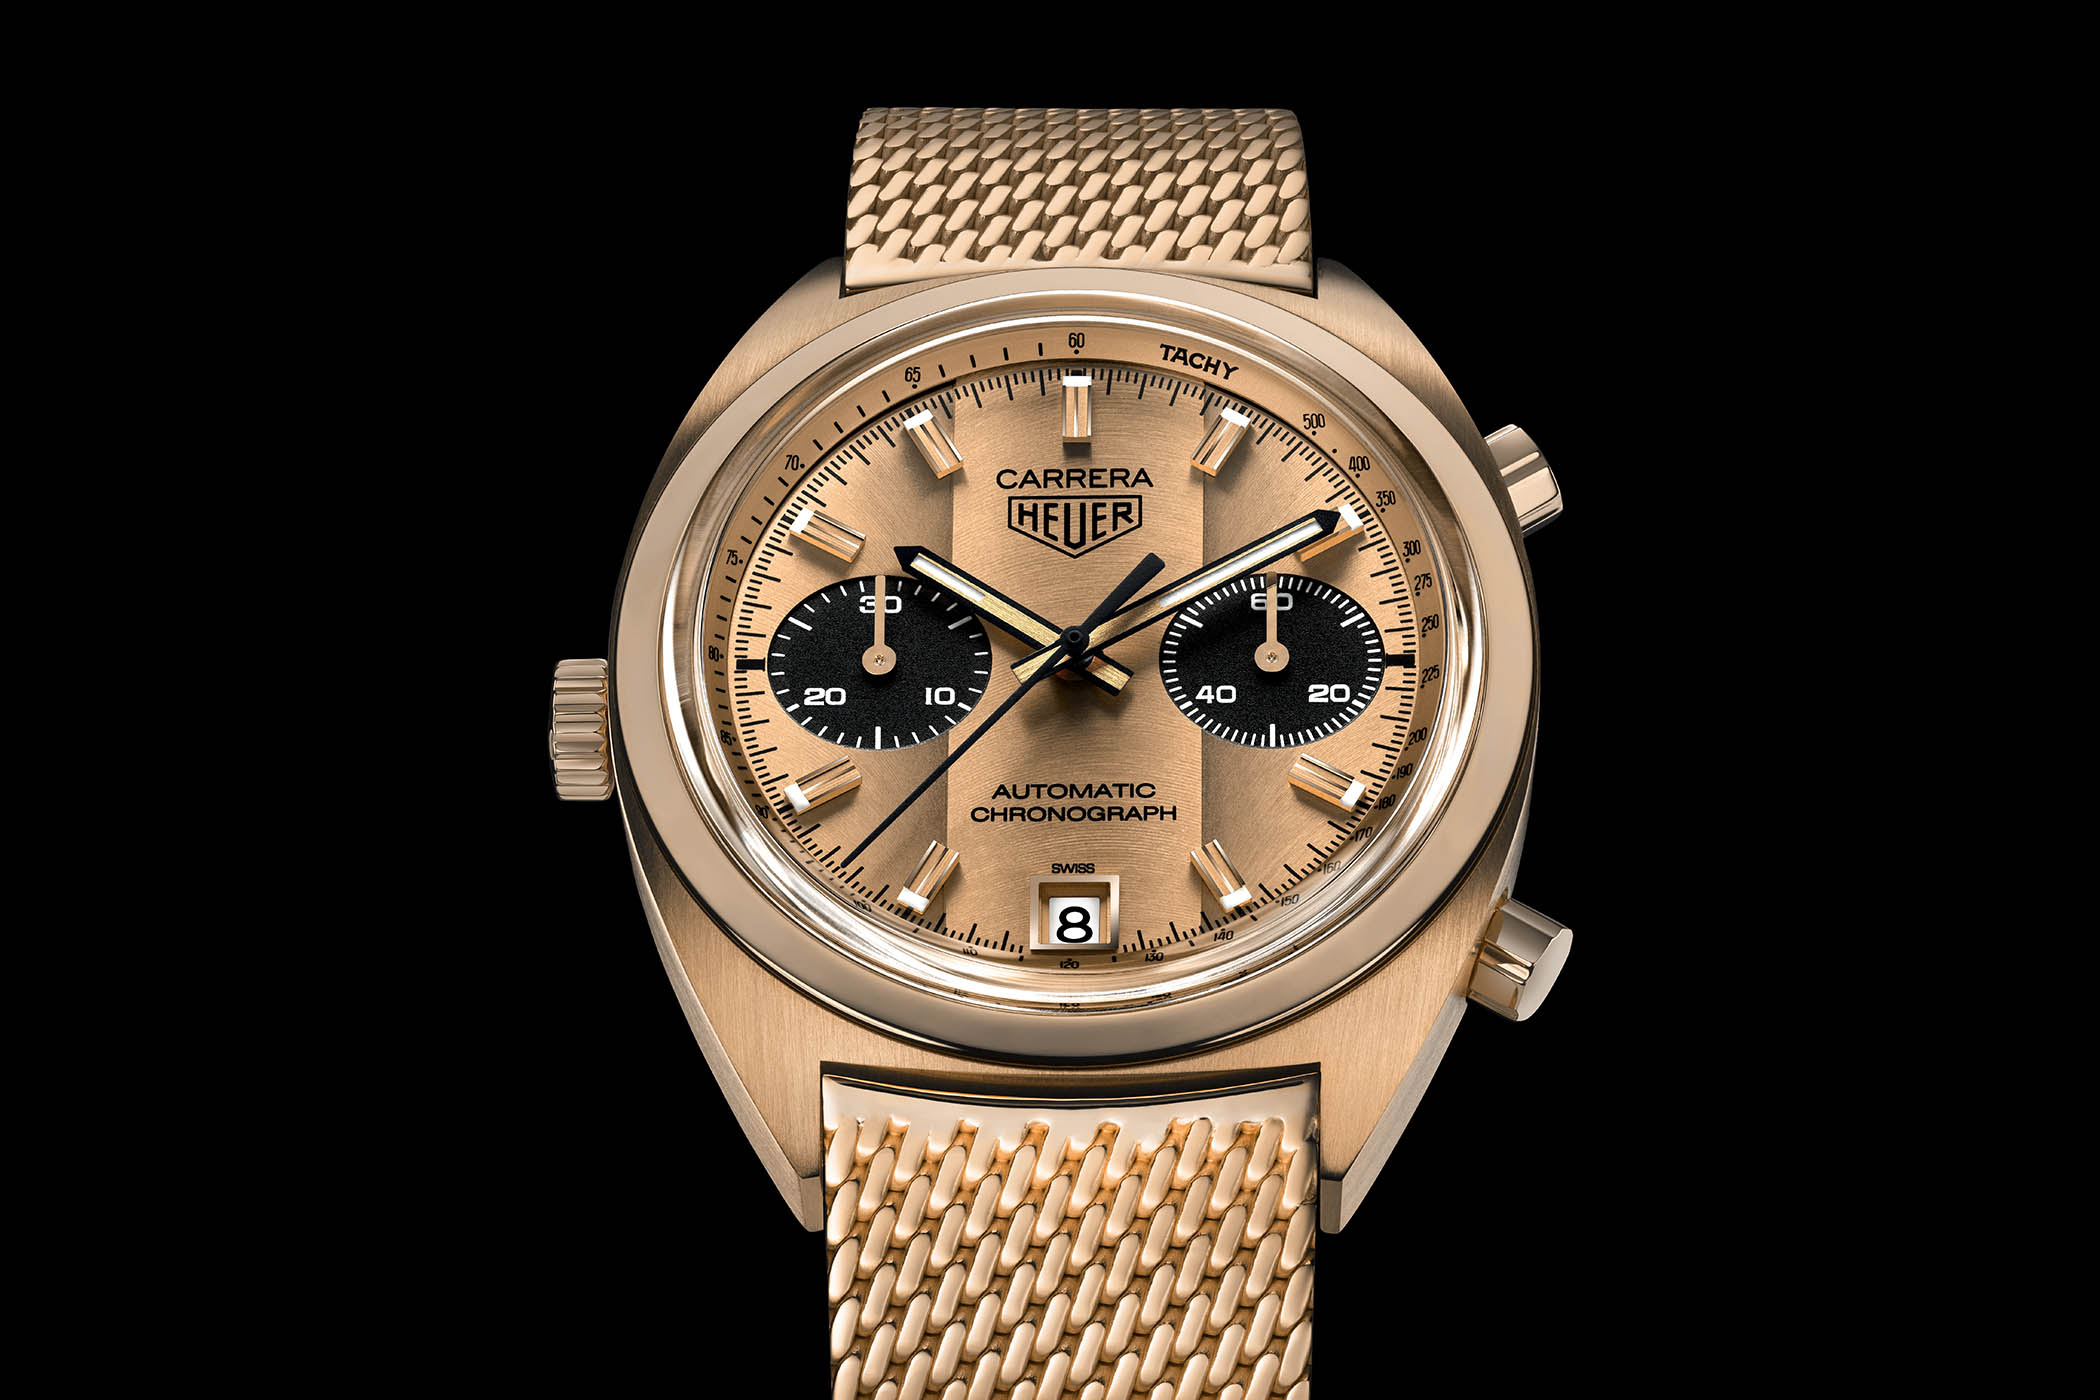 Unique Re-edition Heuer 1158 CHN Ronnie Peterson auction Bonhams